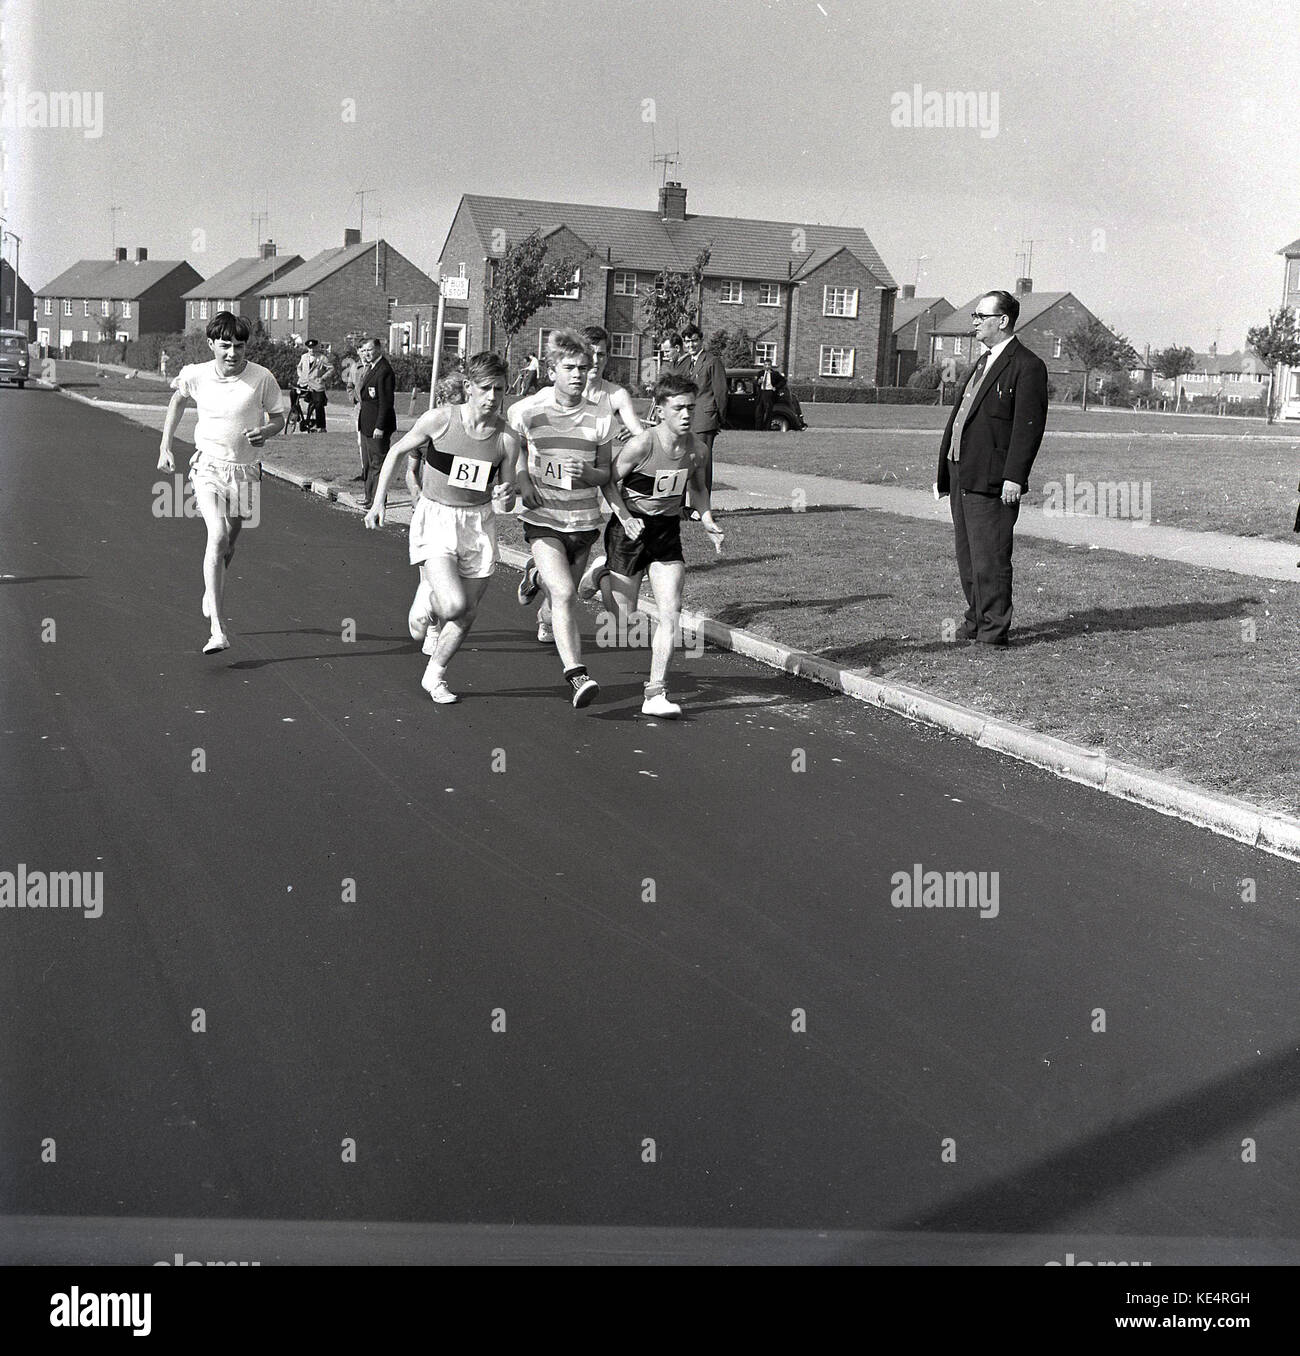 1964, historical, group of teenage boys wearing vests and t-shirts and simple pilmsolls on their feet competiting - Stock Image